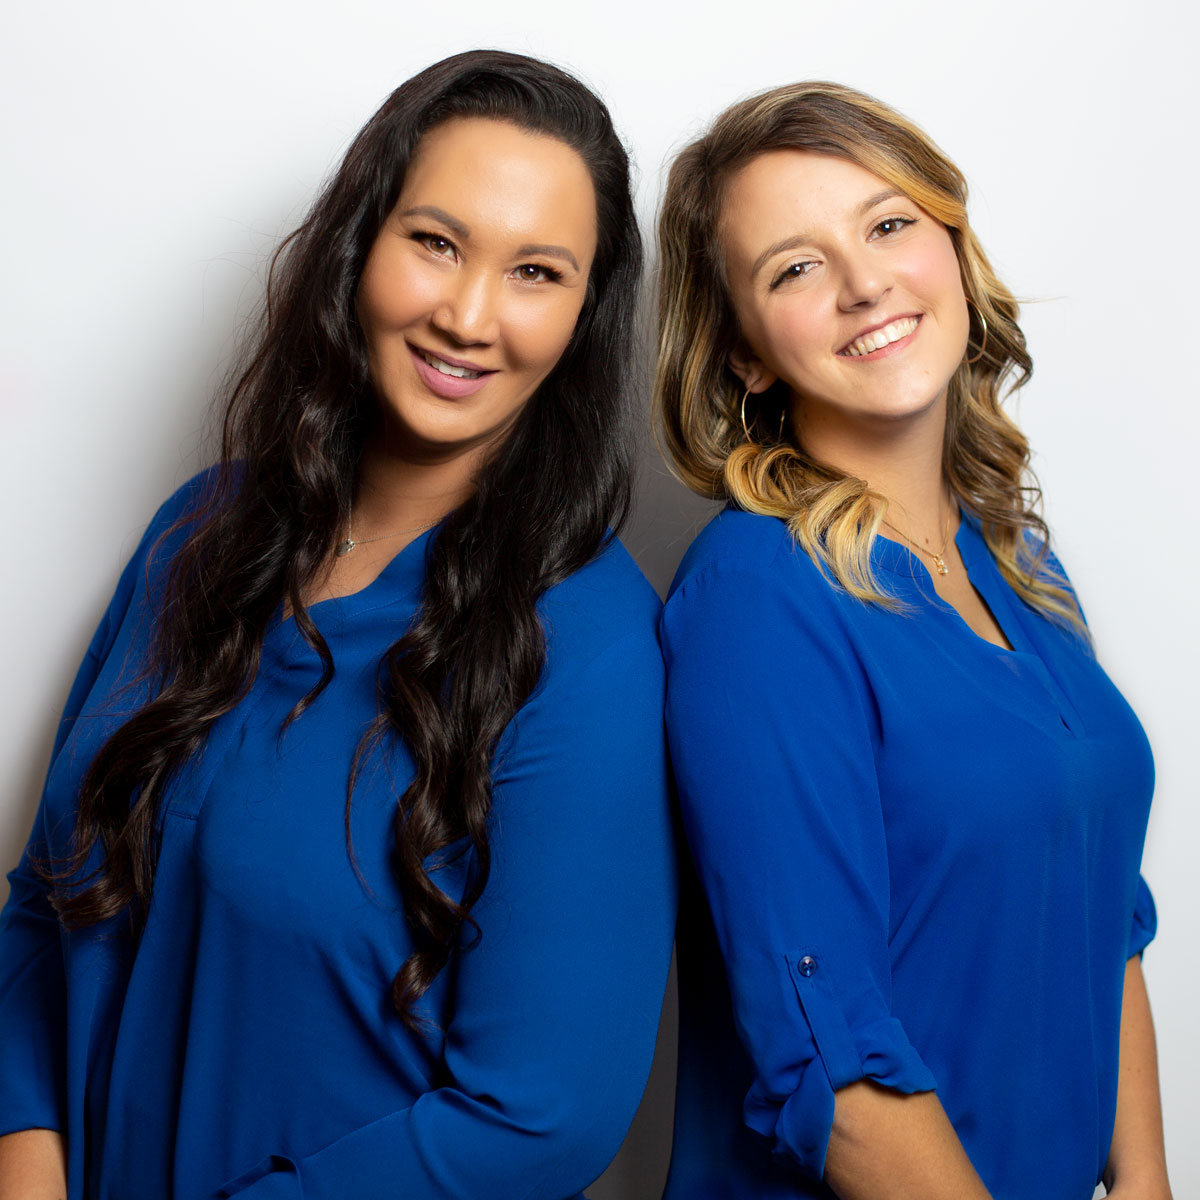 Agents Tina Brooks and Taylor Maples